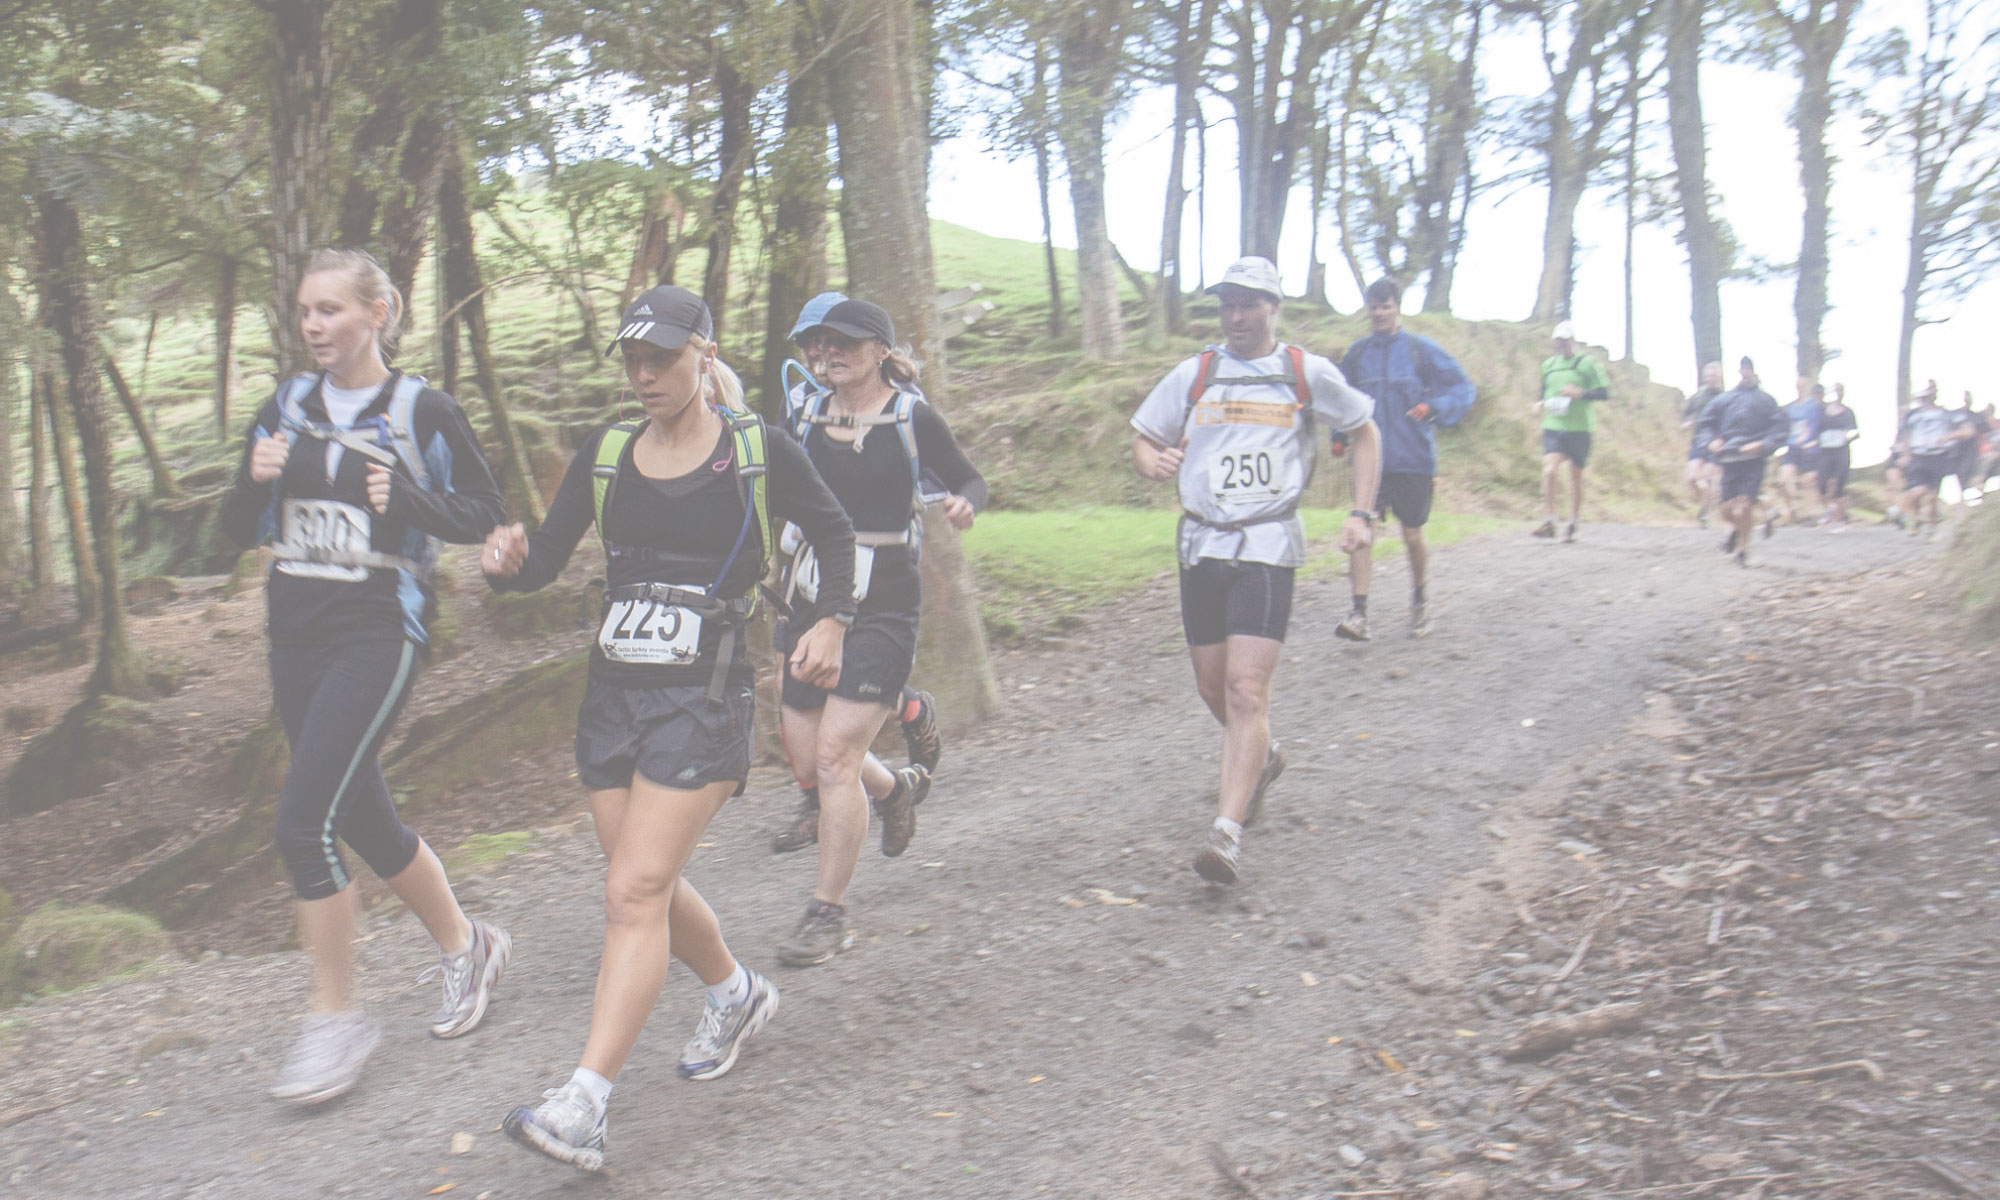 Bivouac Outdoor Wild Auckland Trail Run/Walk Series